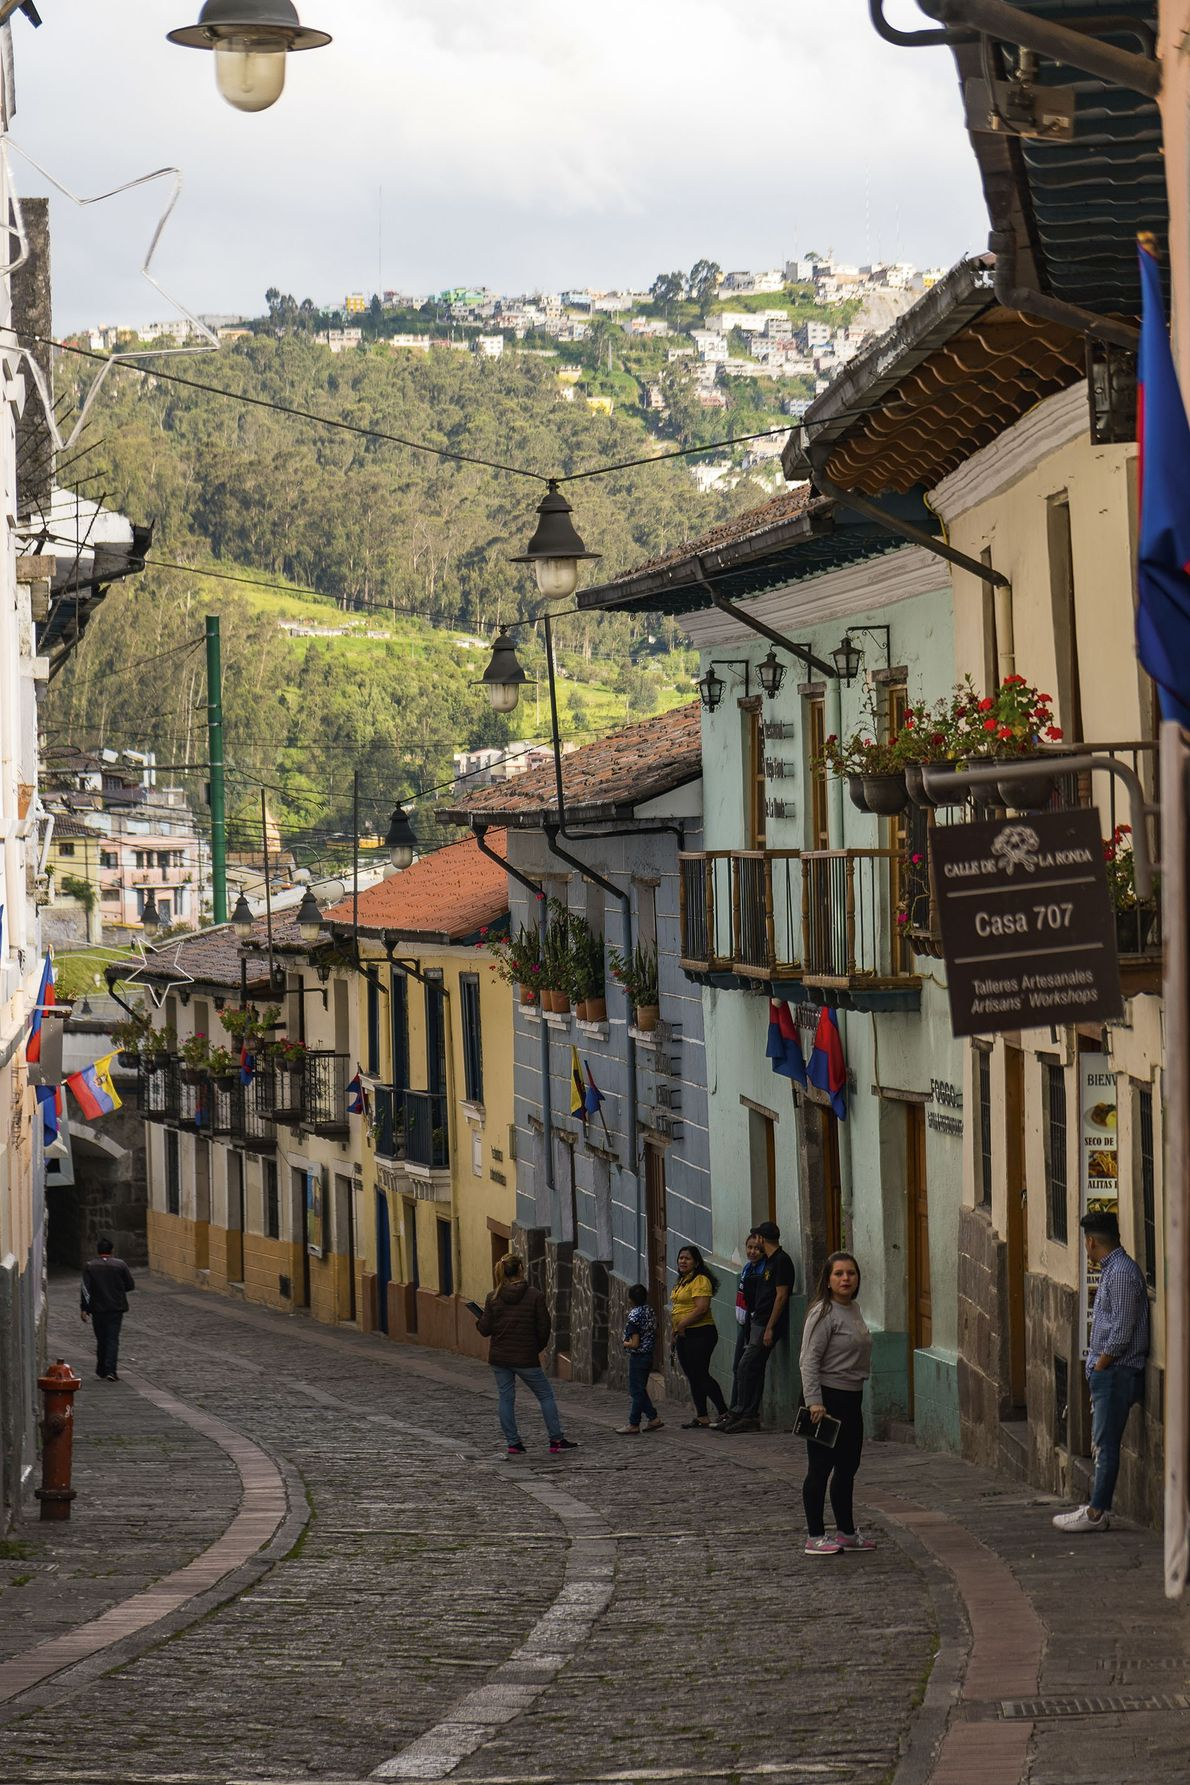 Calle La Ronda, a historic street in Quito that's home to numerous chocolate shops